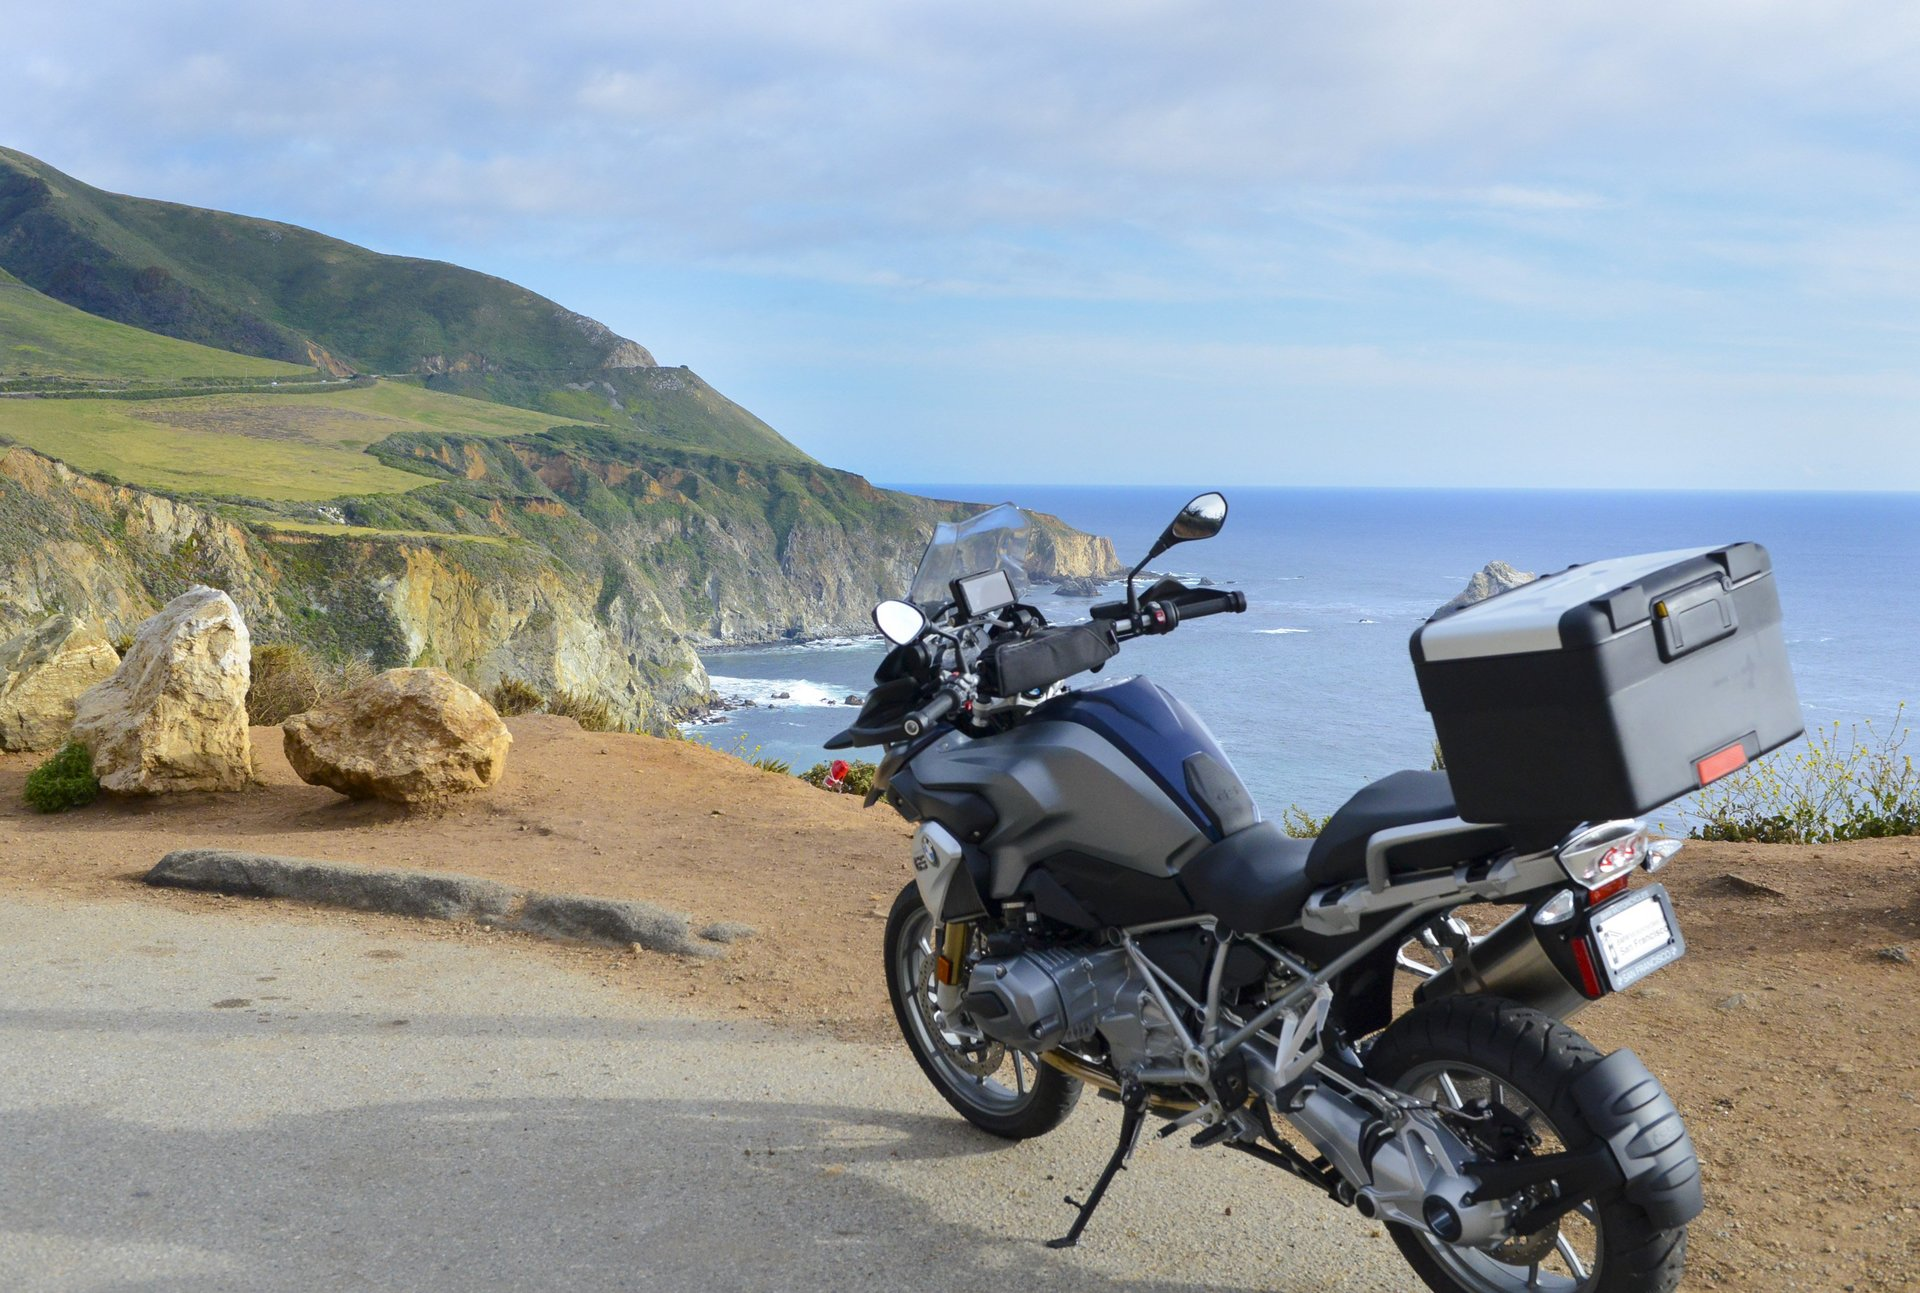 Motorcycle Rental in San Francisco